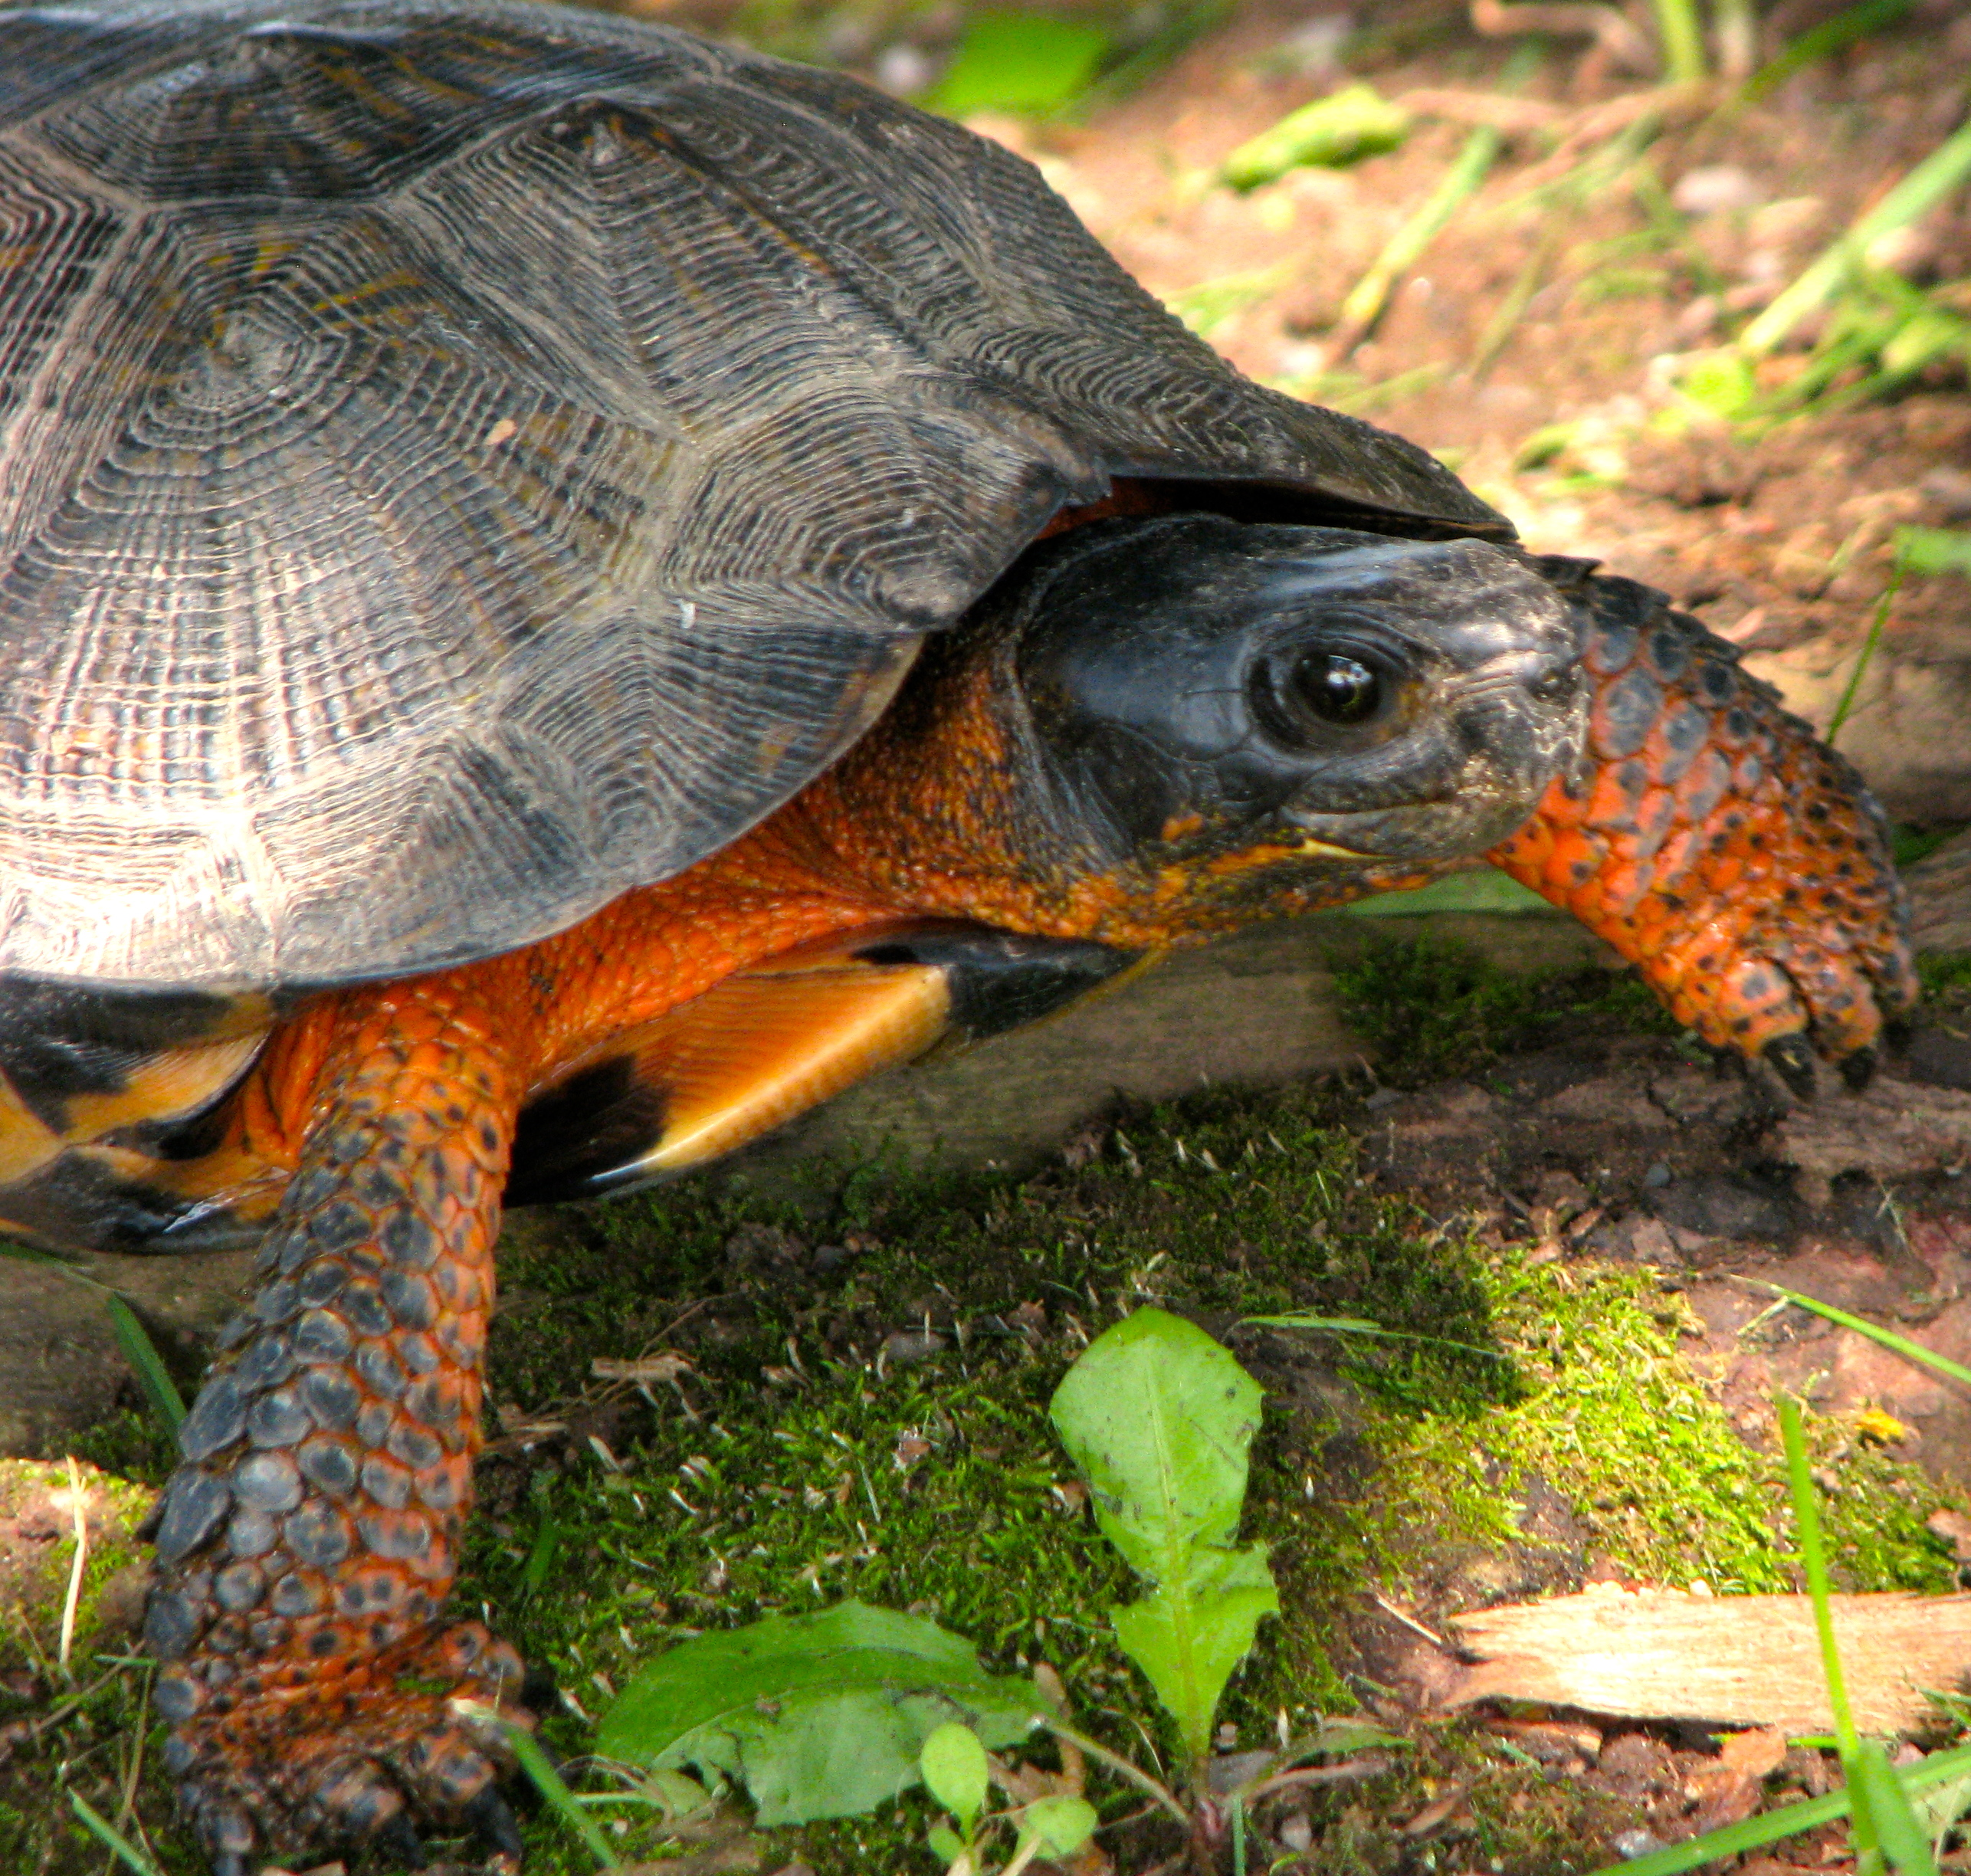 The Wood Turtle, a semi-aquatic freshwater species, has a shell that resembles wood, hence its name. At risk in its entire range, it has found a safe place on 5th Canadian Division Support Base Gagetown where conservation efforts earned the base a Silver Salamander Award from the Canadian Herpetological Society on September 19, 2015. Photo by: Deanna McCullum, 5th Canadian Division Support Base Range Biologist. ©2015 DND-MDN Canada.